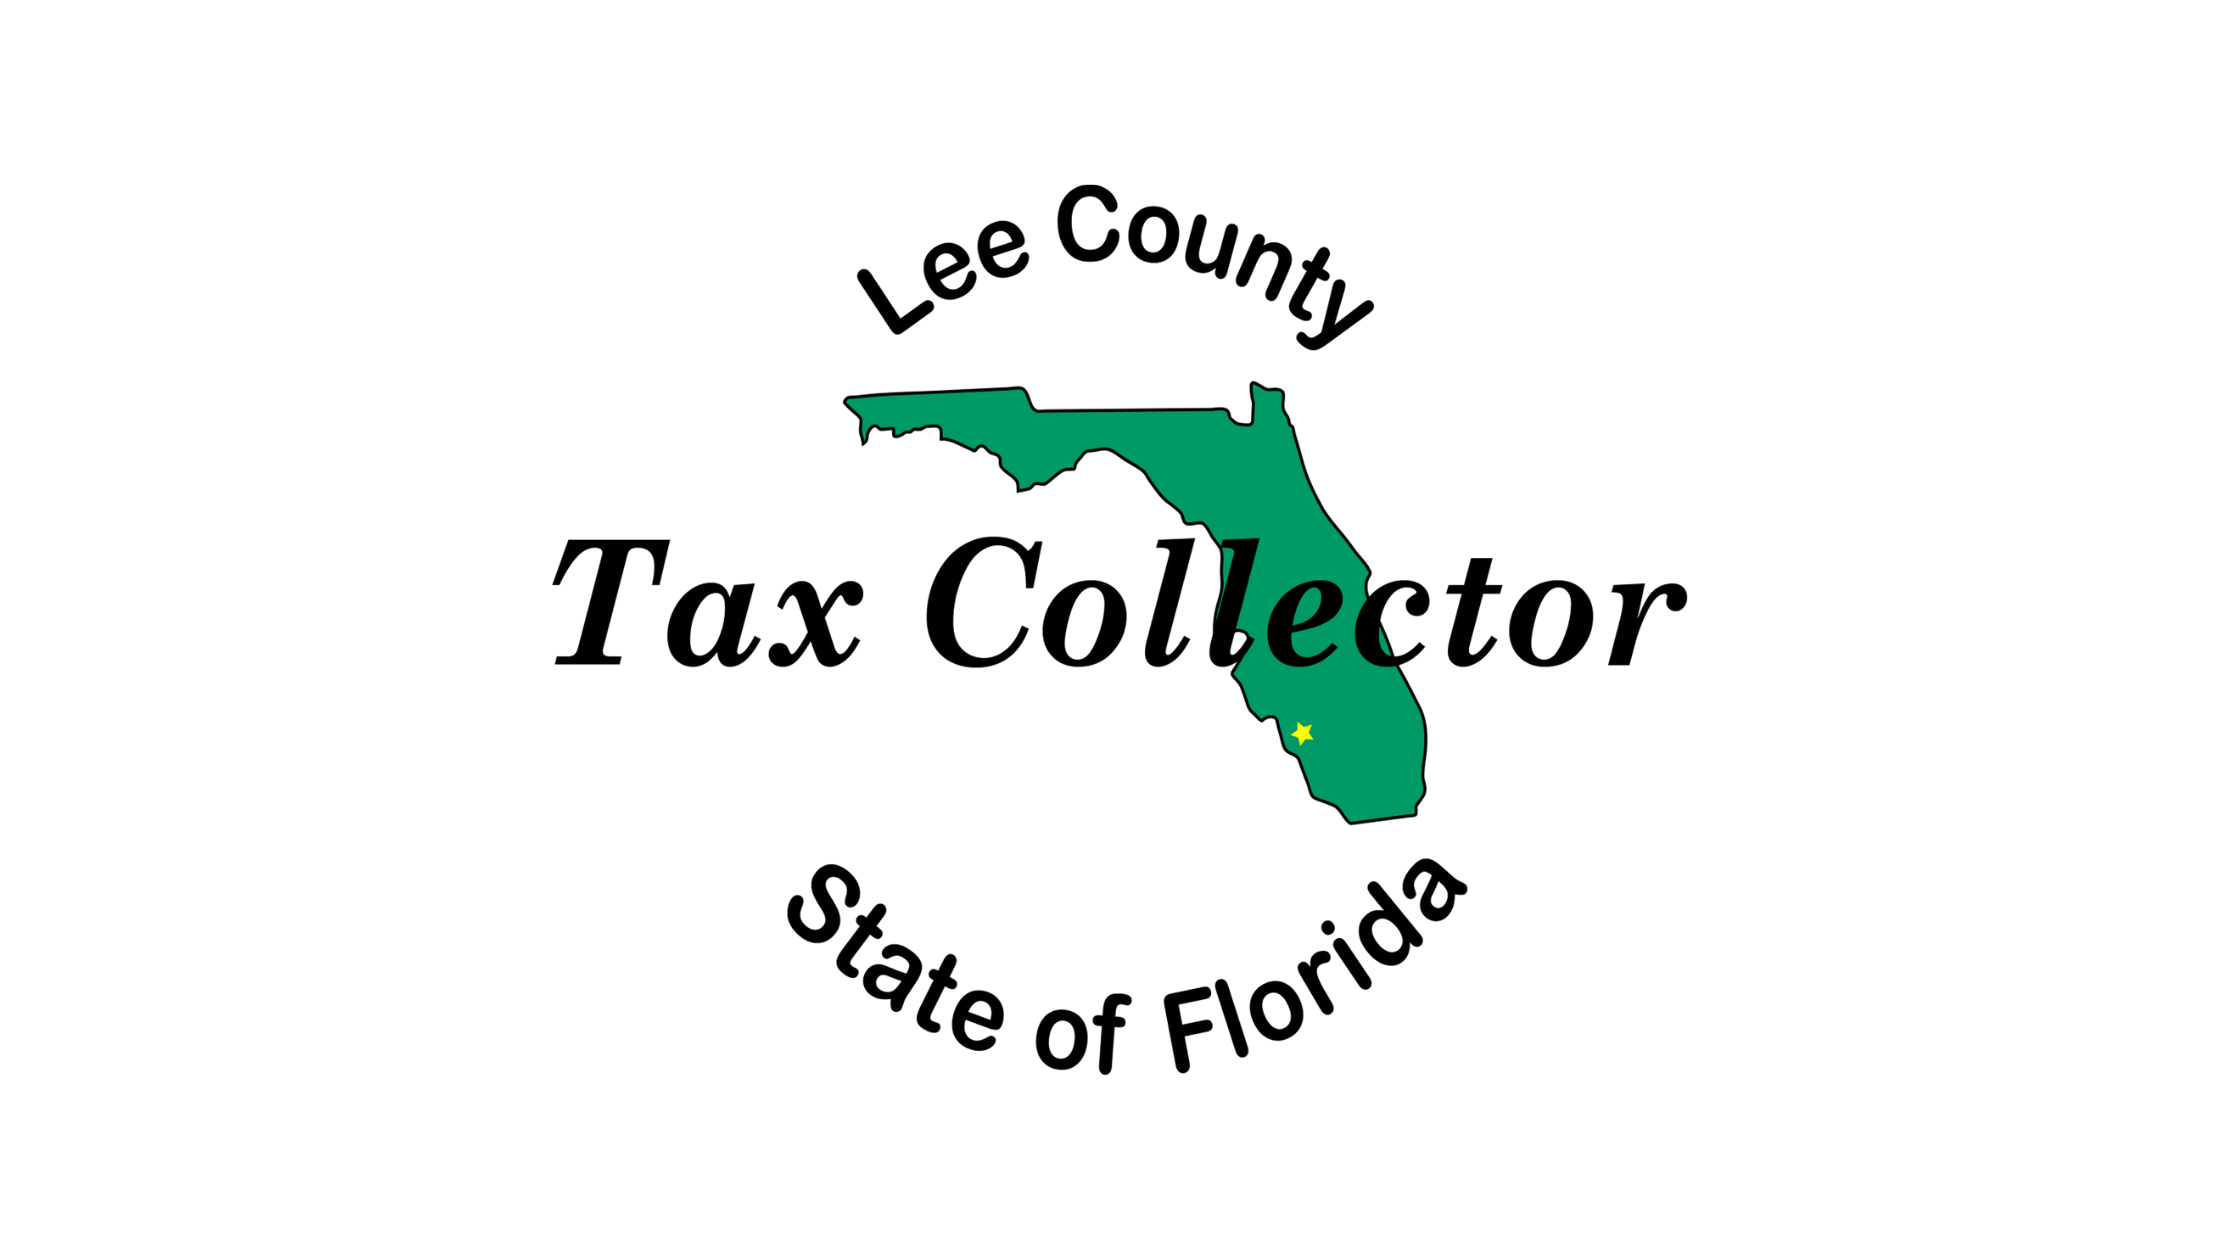 Lee County Tax Collector announces winners of Rock the Road Challenge